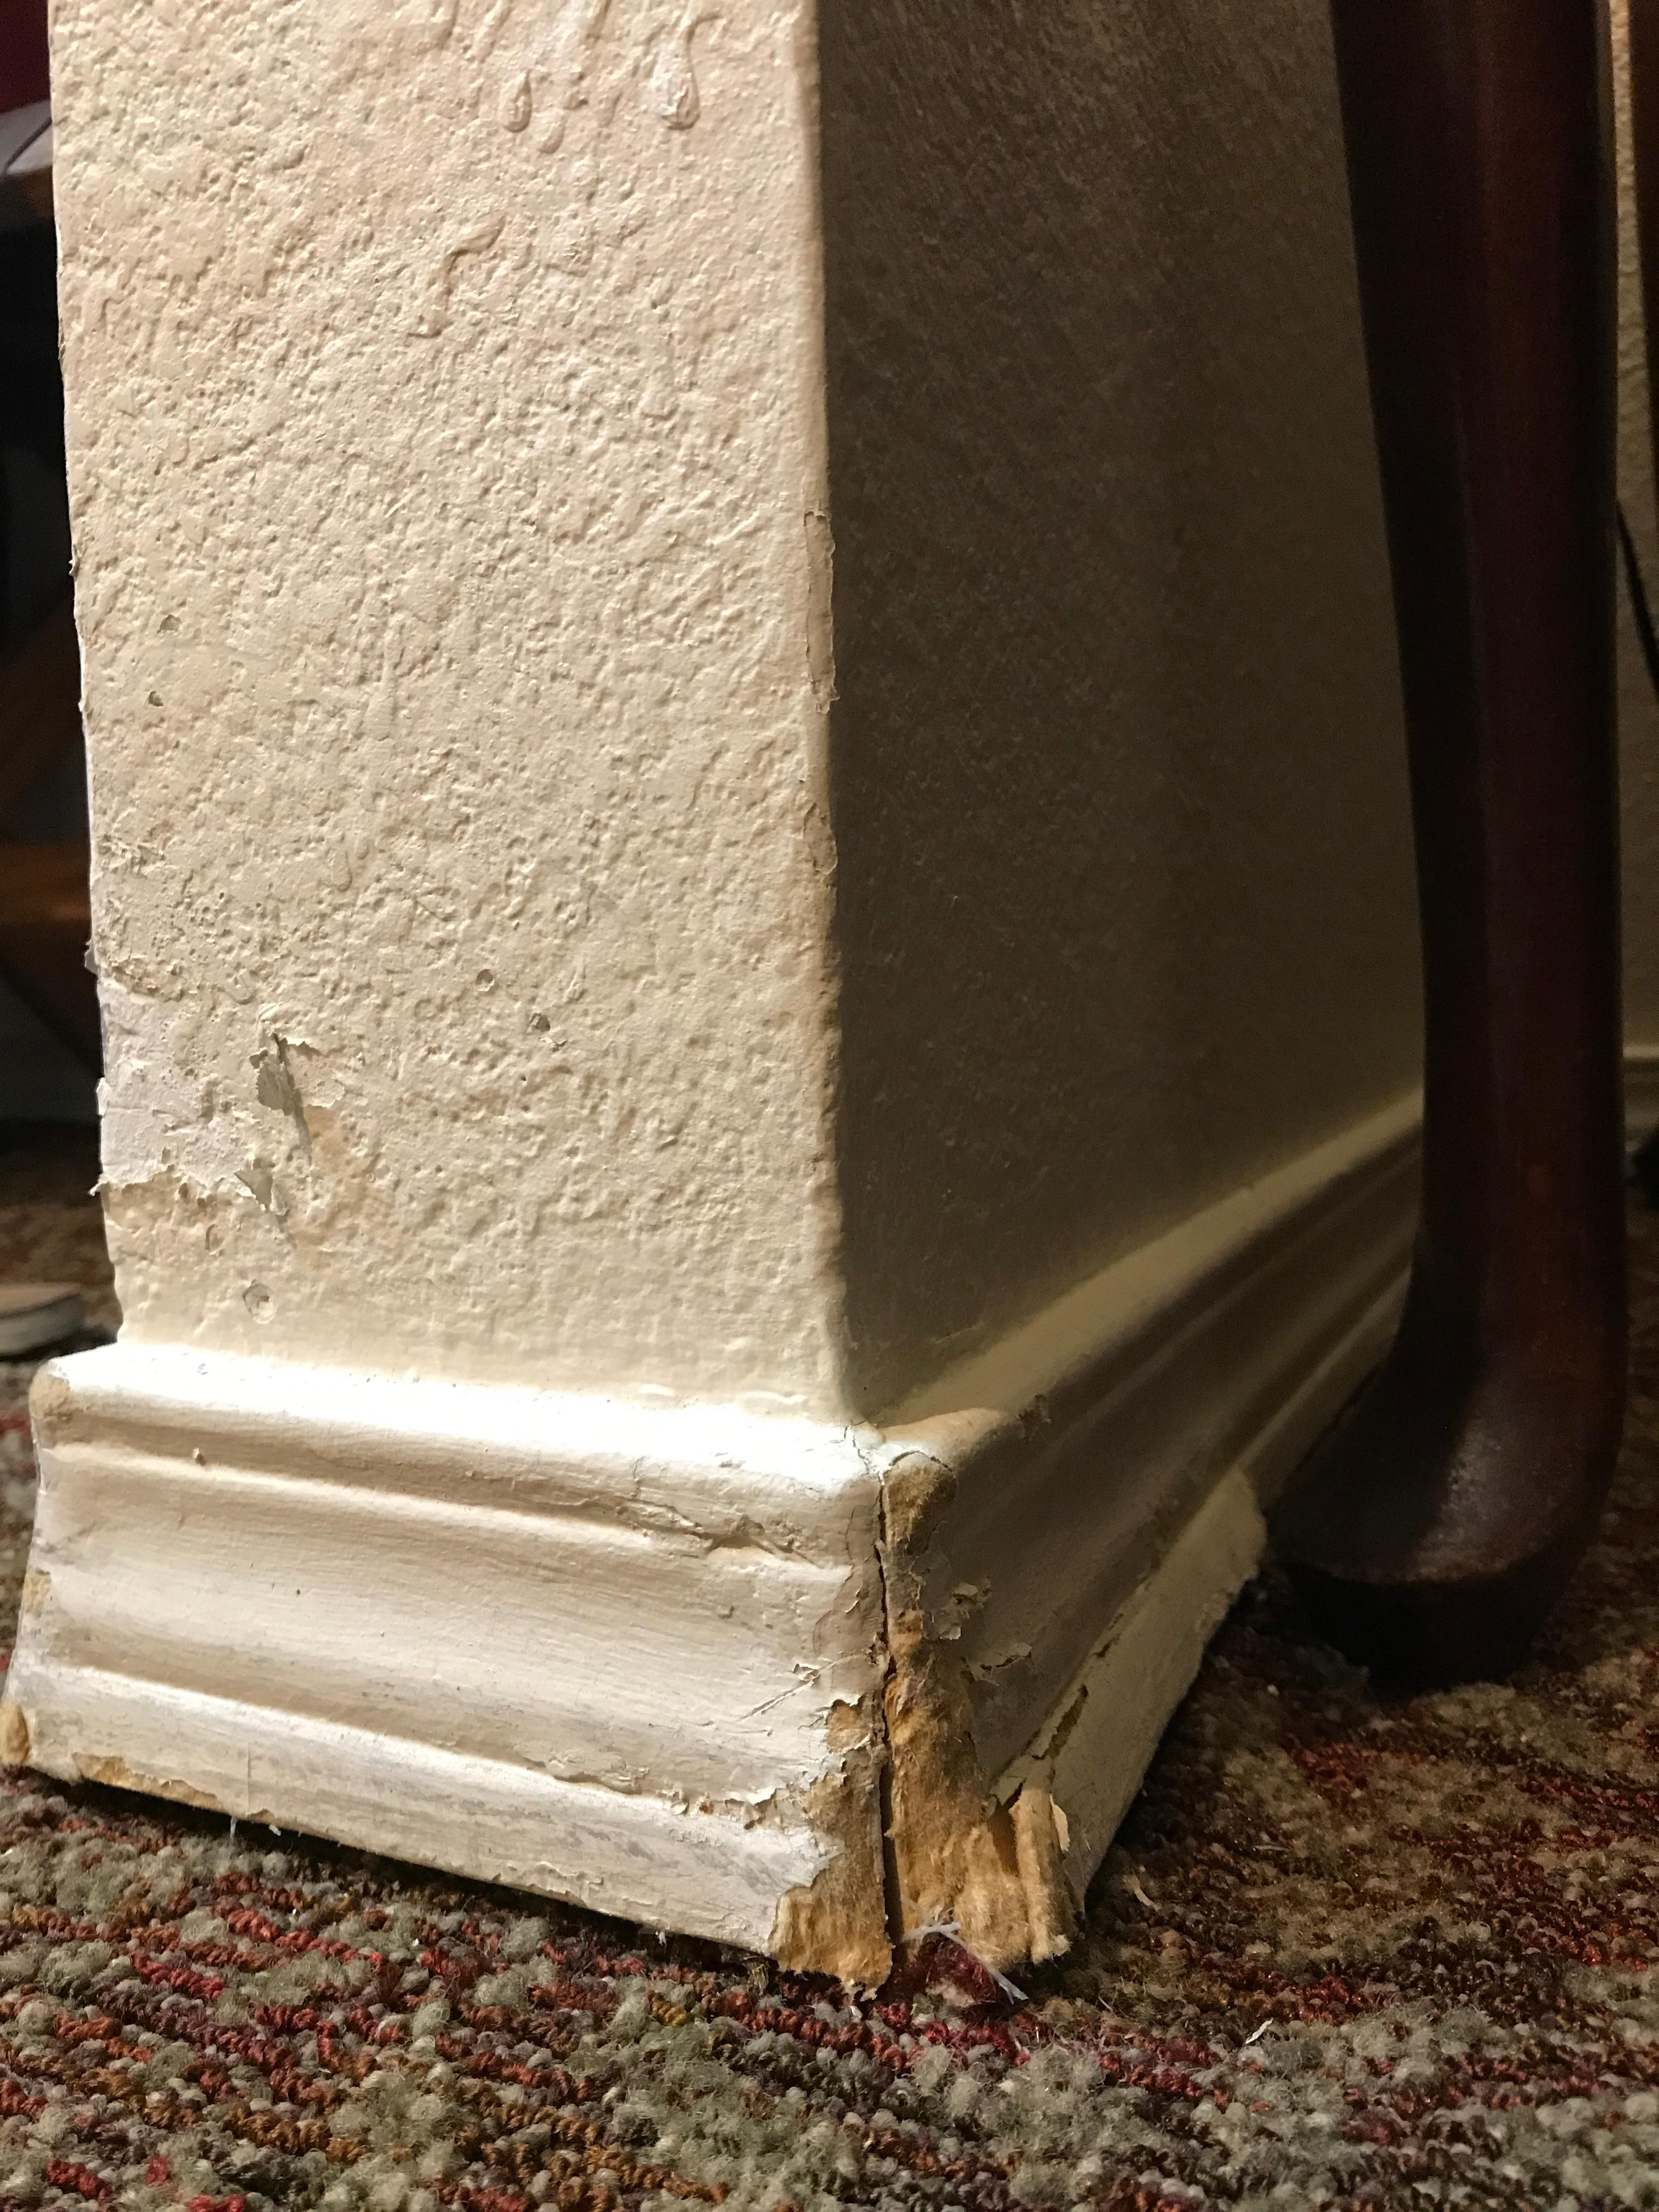 Busted baseboard, dirty walls